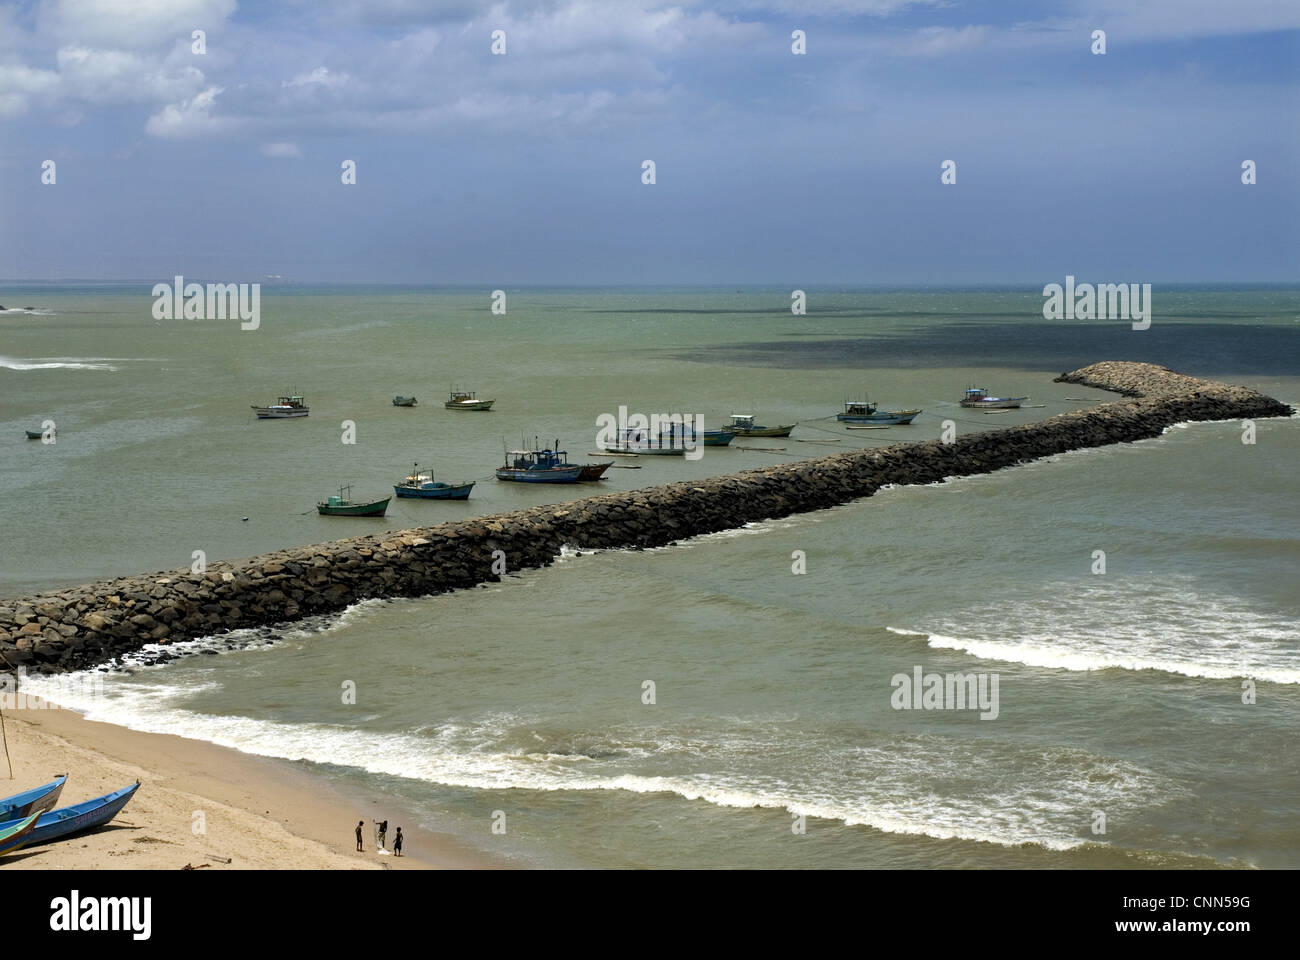 water of arabian sea indian ocean and bay bengal meet at the pole